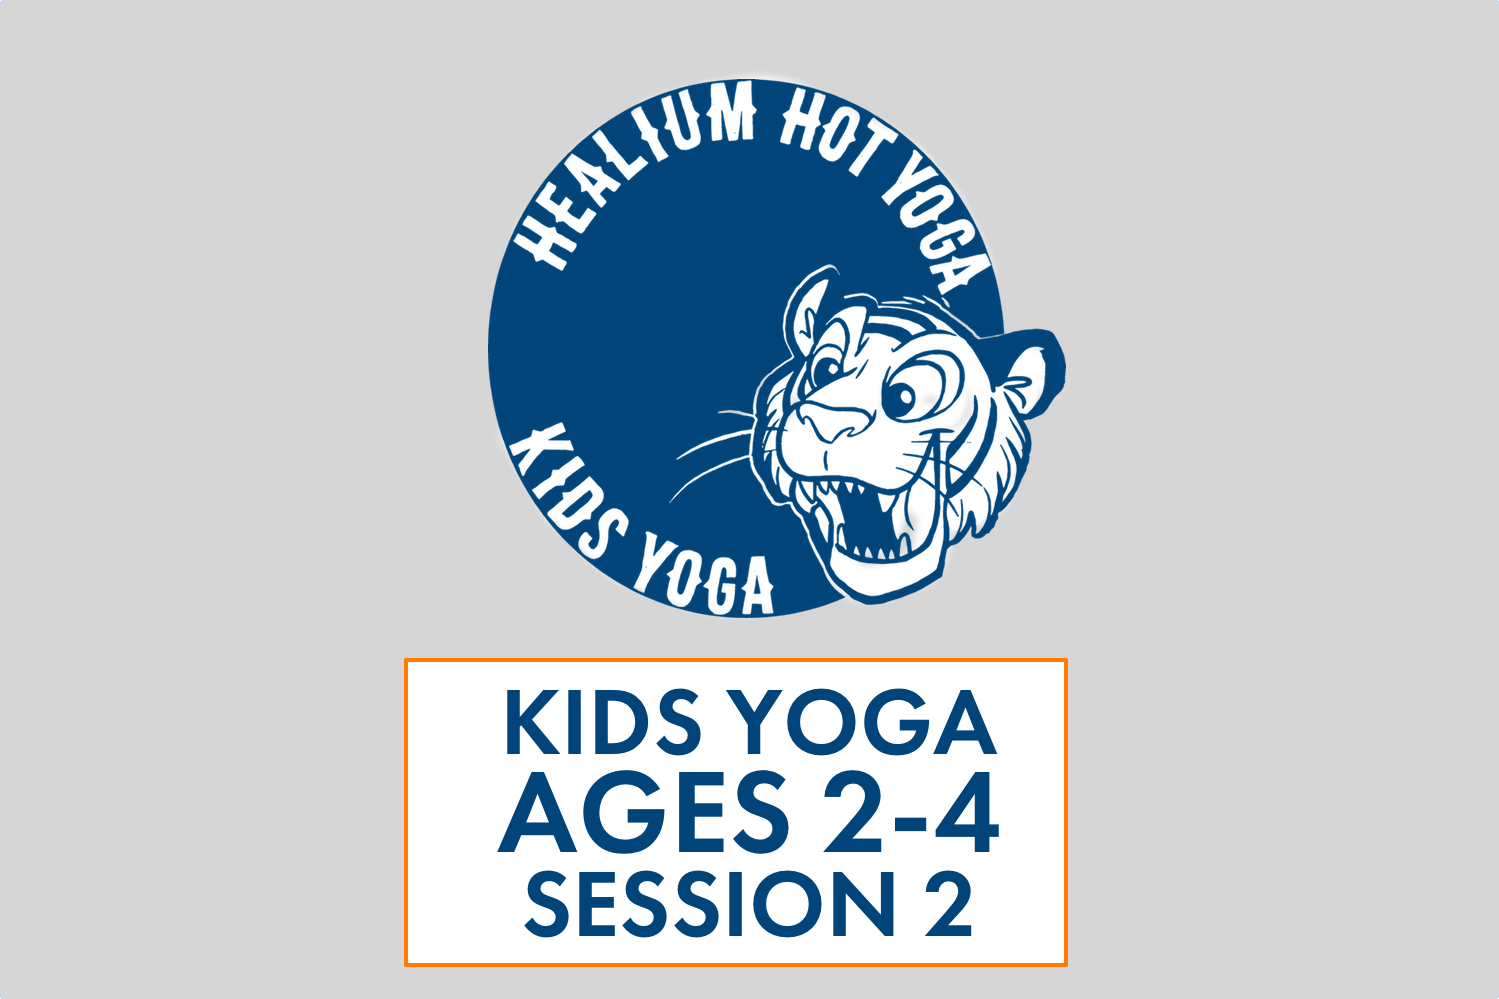 KIDS 2-4 SESSION 2 hhy web.png